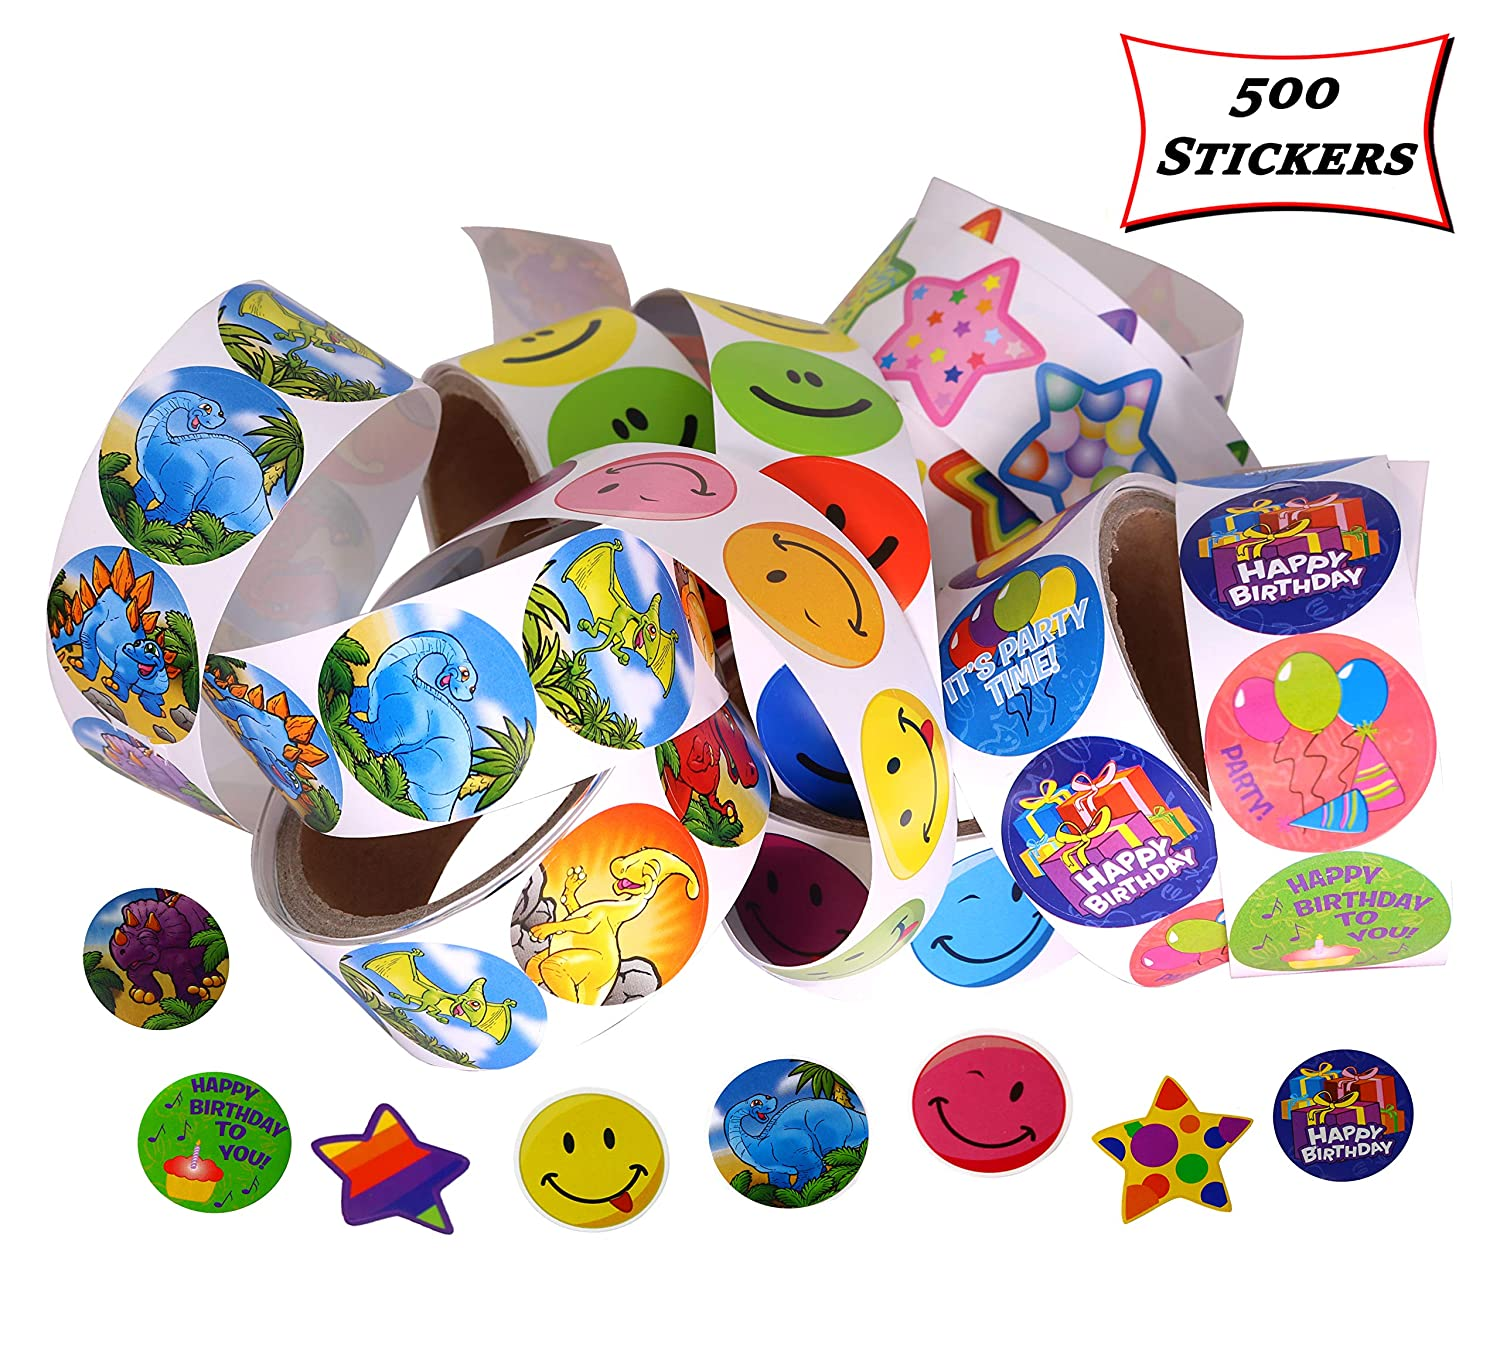 5 Rolls of 100 Stickers A Total of 500 Stickers Per Order Smart Novelty Sticker Roll Assortment for Kids Prizes